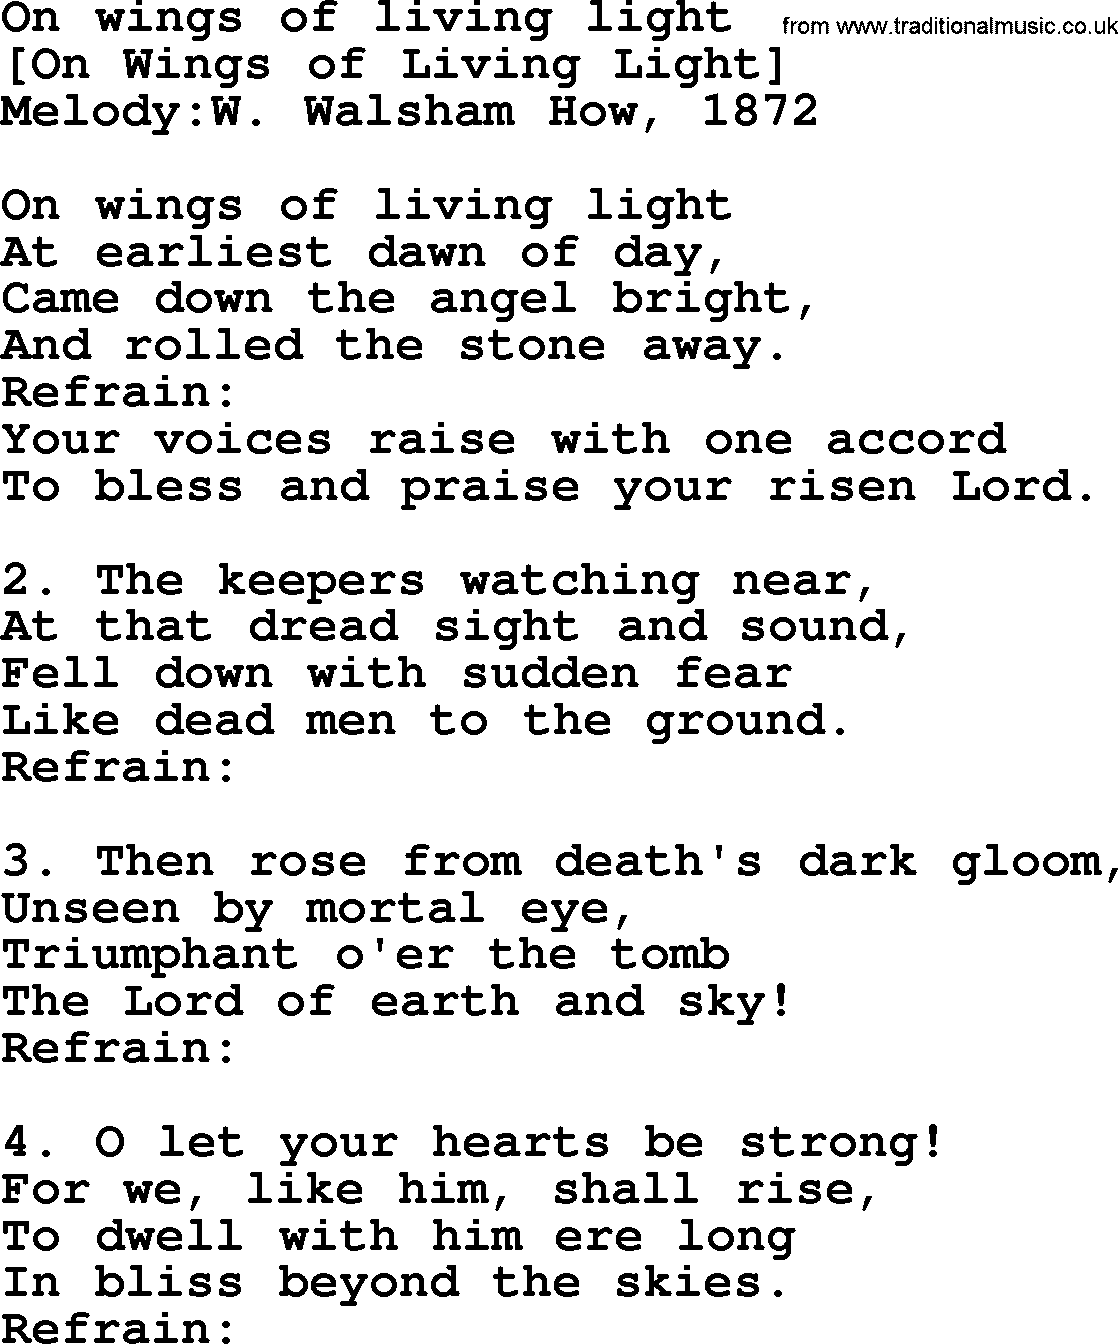 Old English Song Lyrics For On Wings Of Living Light, With Pdf. Best Behr Paint Colors Living Room. Persian Rug Living Room. How To Make My Living Room Look Bigger. Value City Furniture Living Room Sets. Living Rooms With Black Leather Sofas. Interior Design Grey Living Room. Black And White Living Room Wallpaper. Gypsum Designs For Living Room